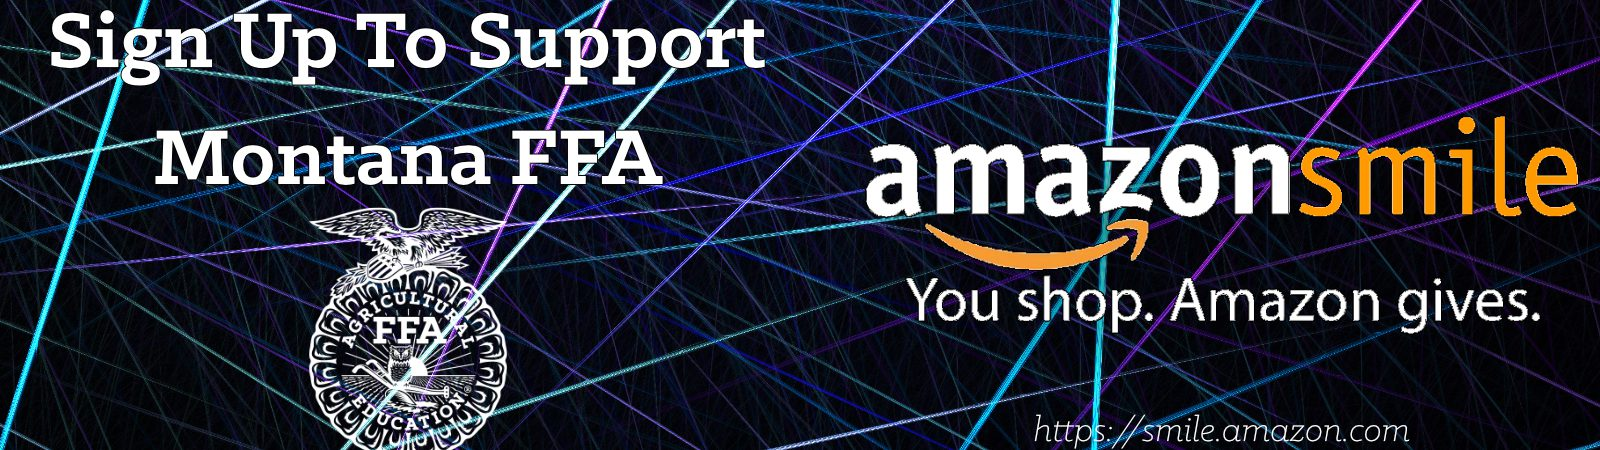 Support Montana FFA through Amazon Smile